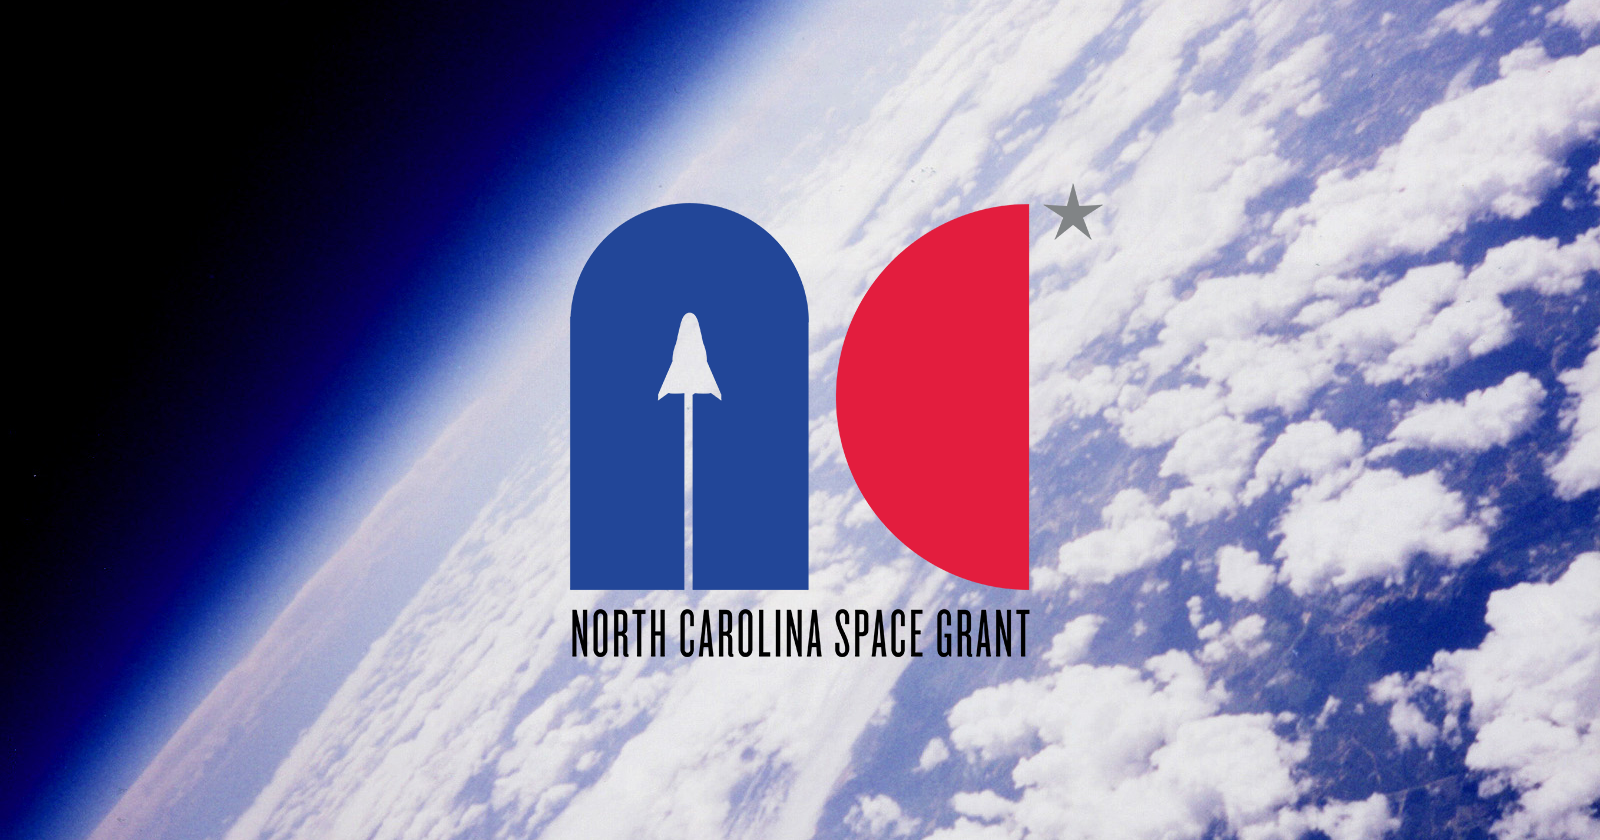 High-altitude balloon image of Earth with NC Space Grant logo